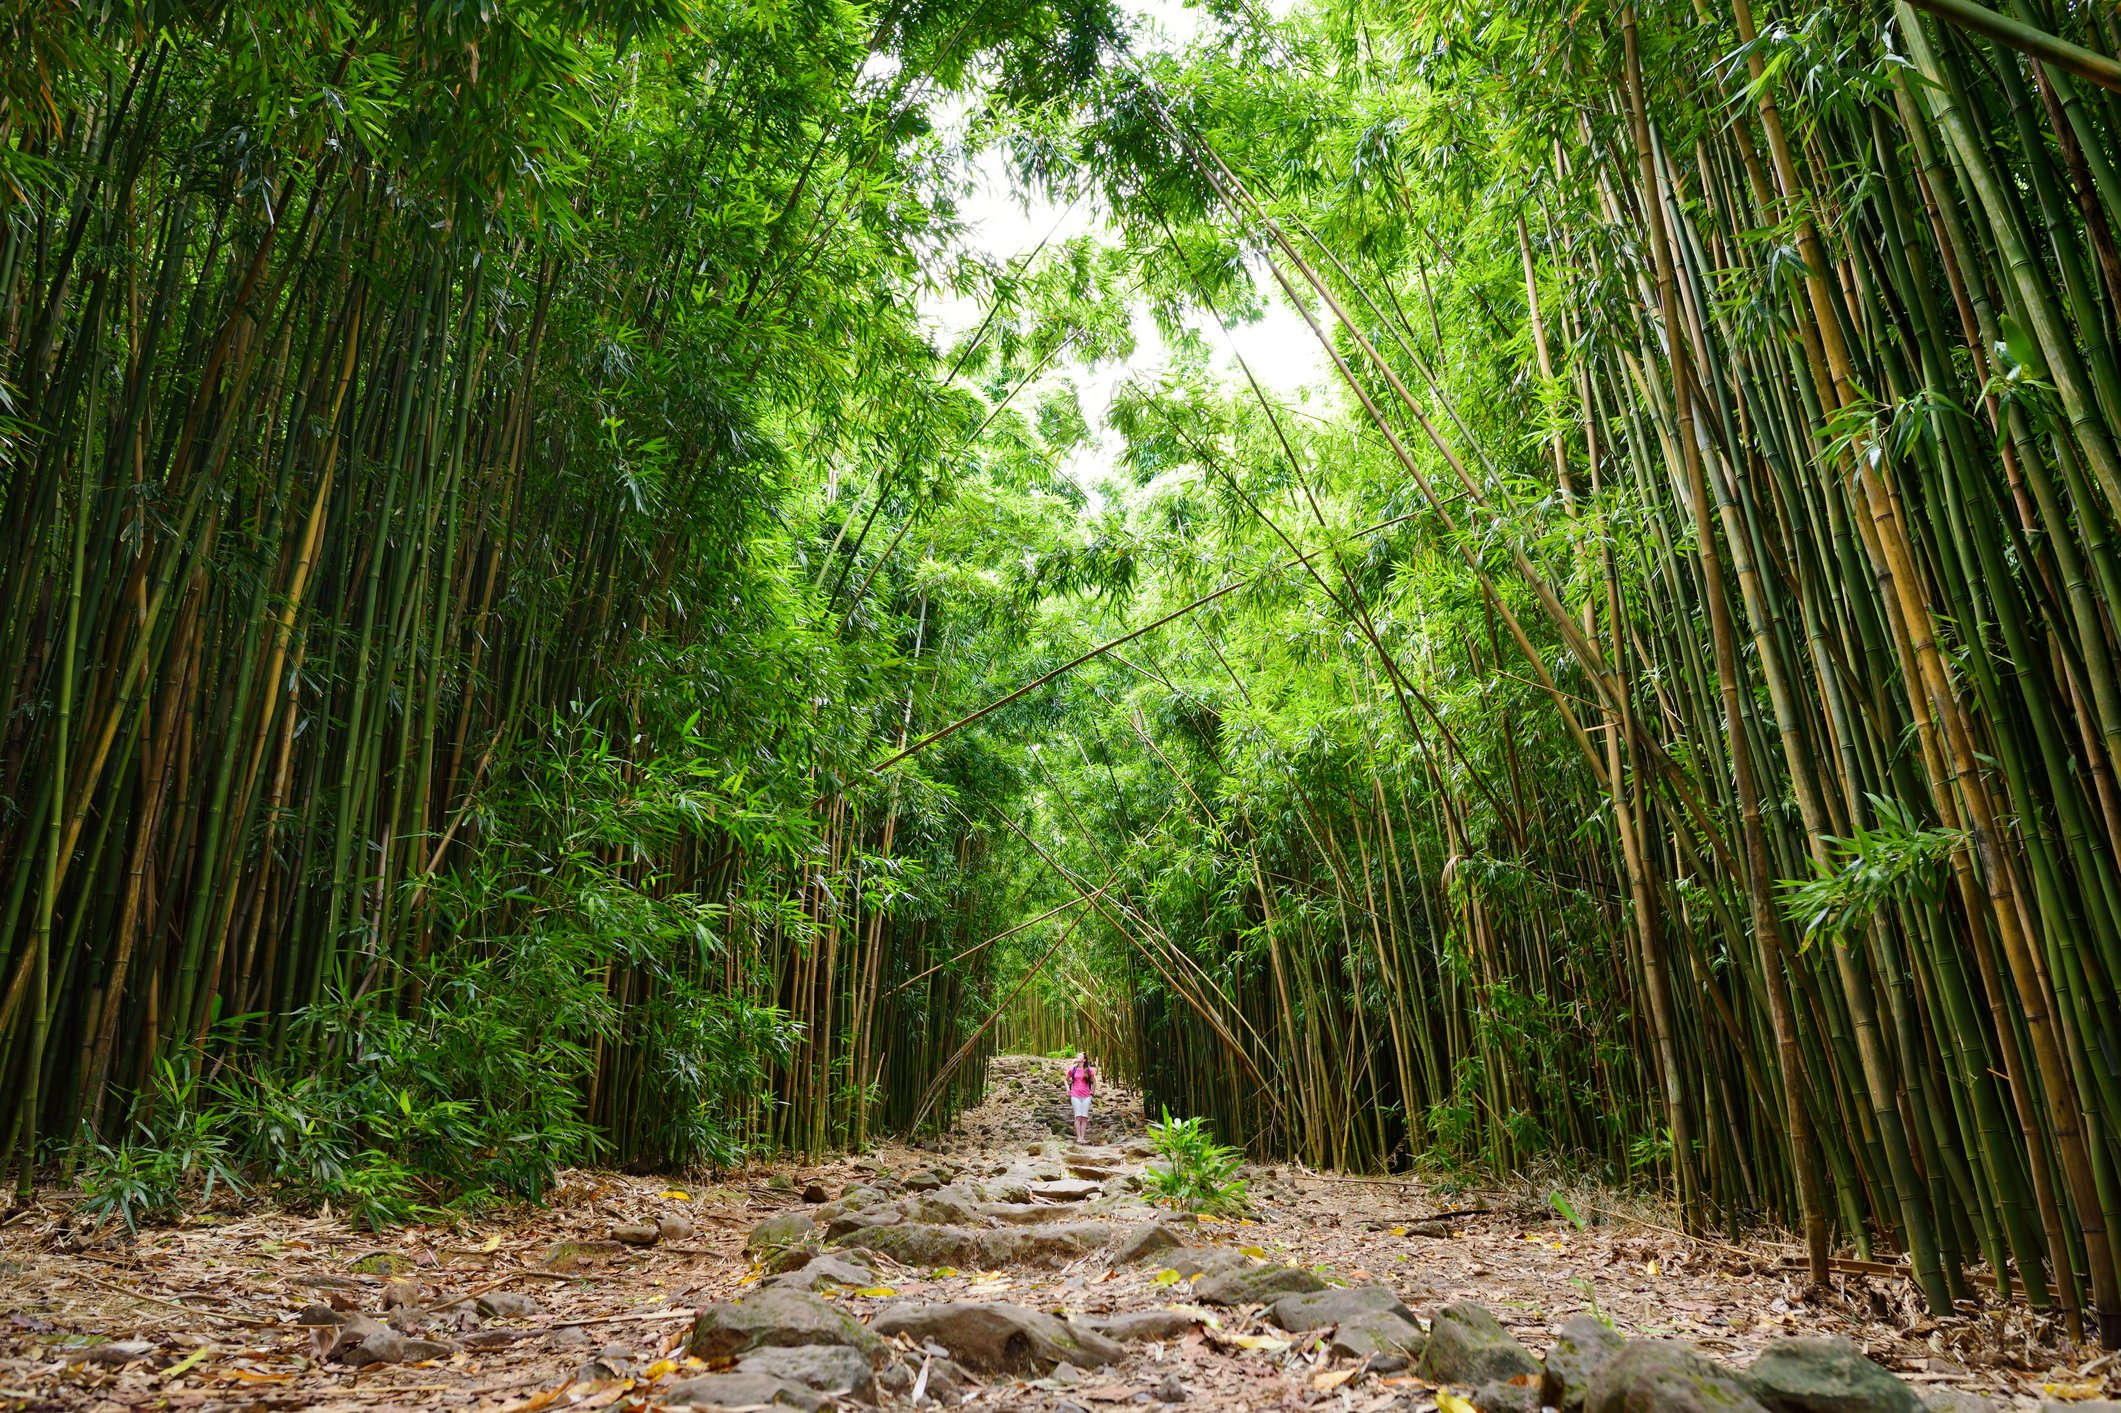 A woman stands on a rocky path underneath the massive bamboo.